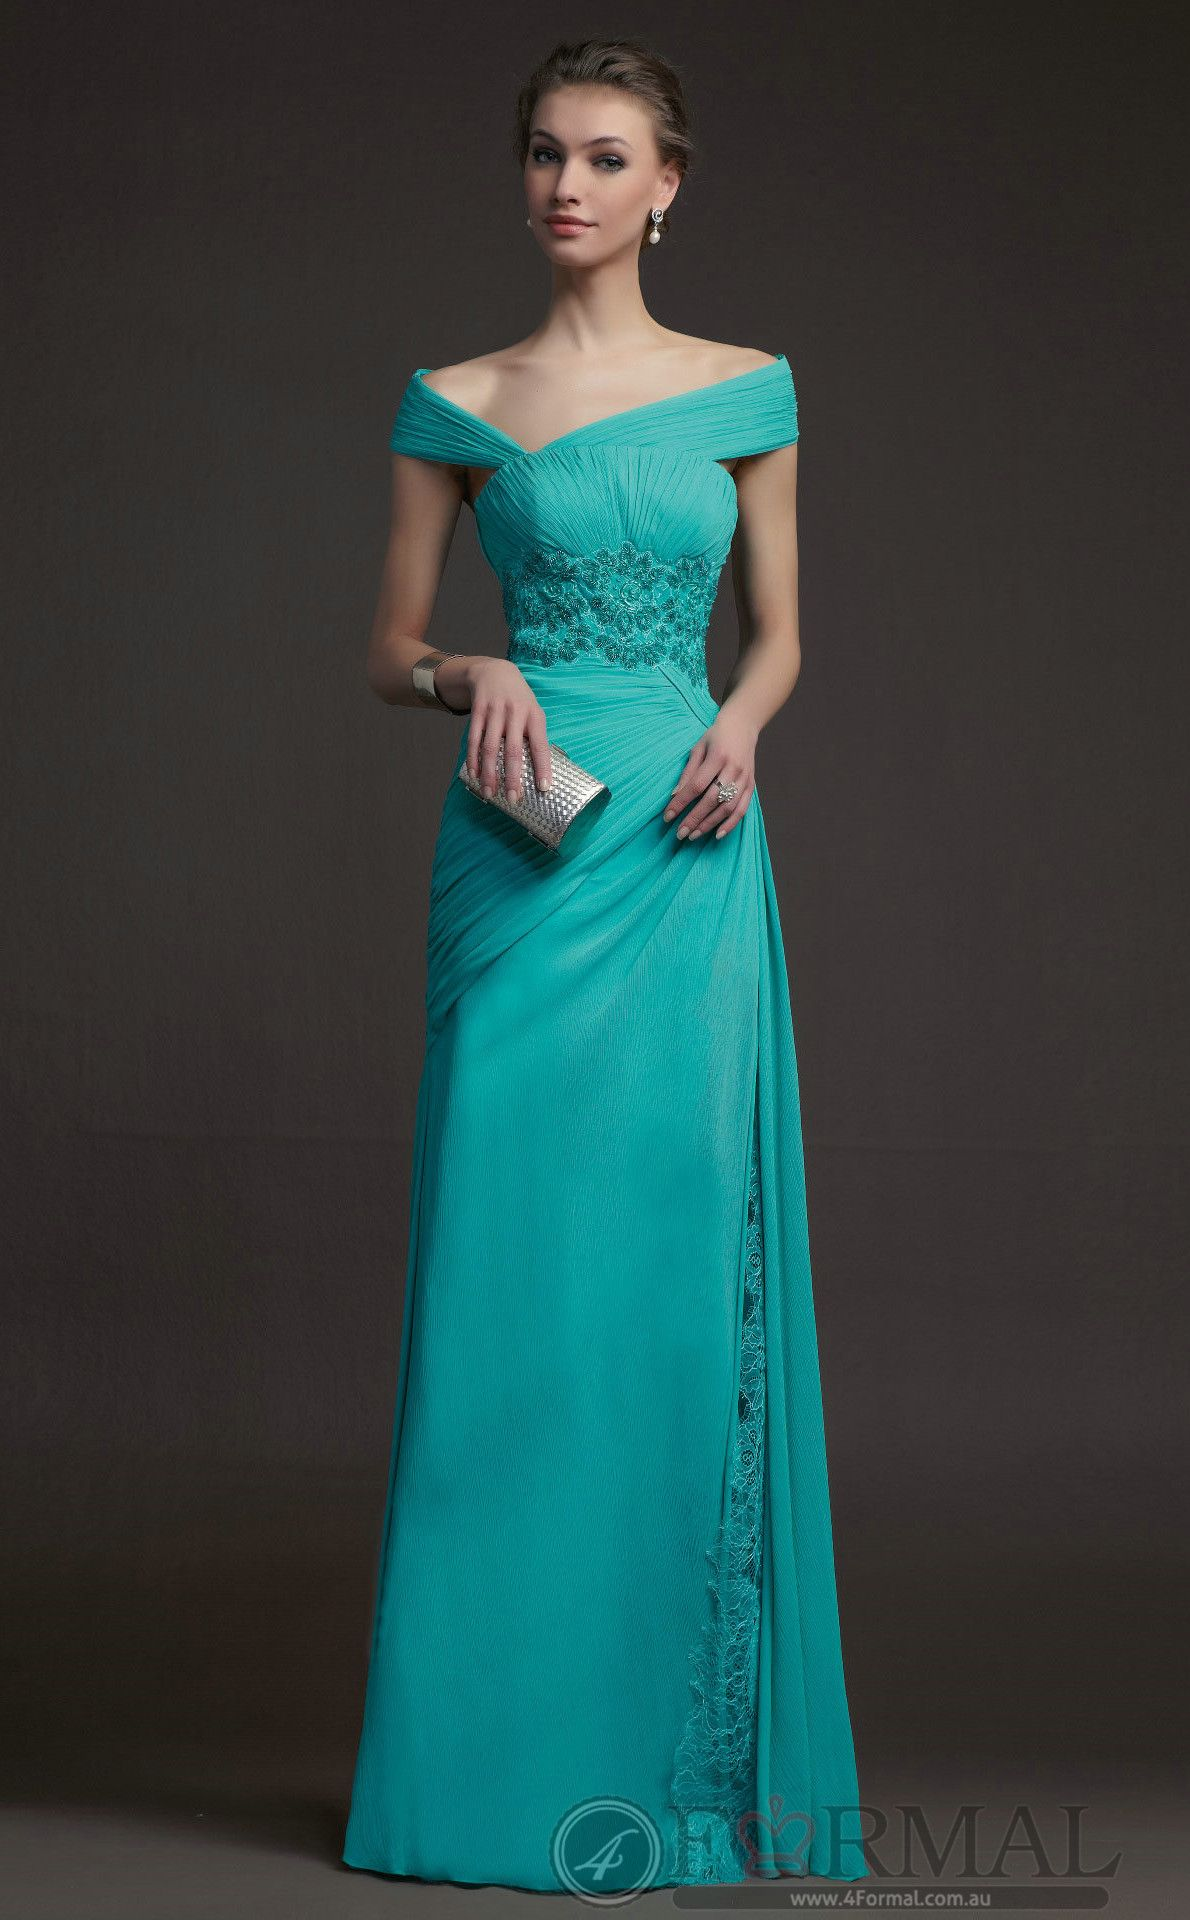 For Women Long Green Lace Semi-Formal Prom Dress at 4formal.com.au ...